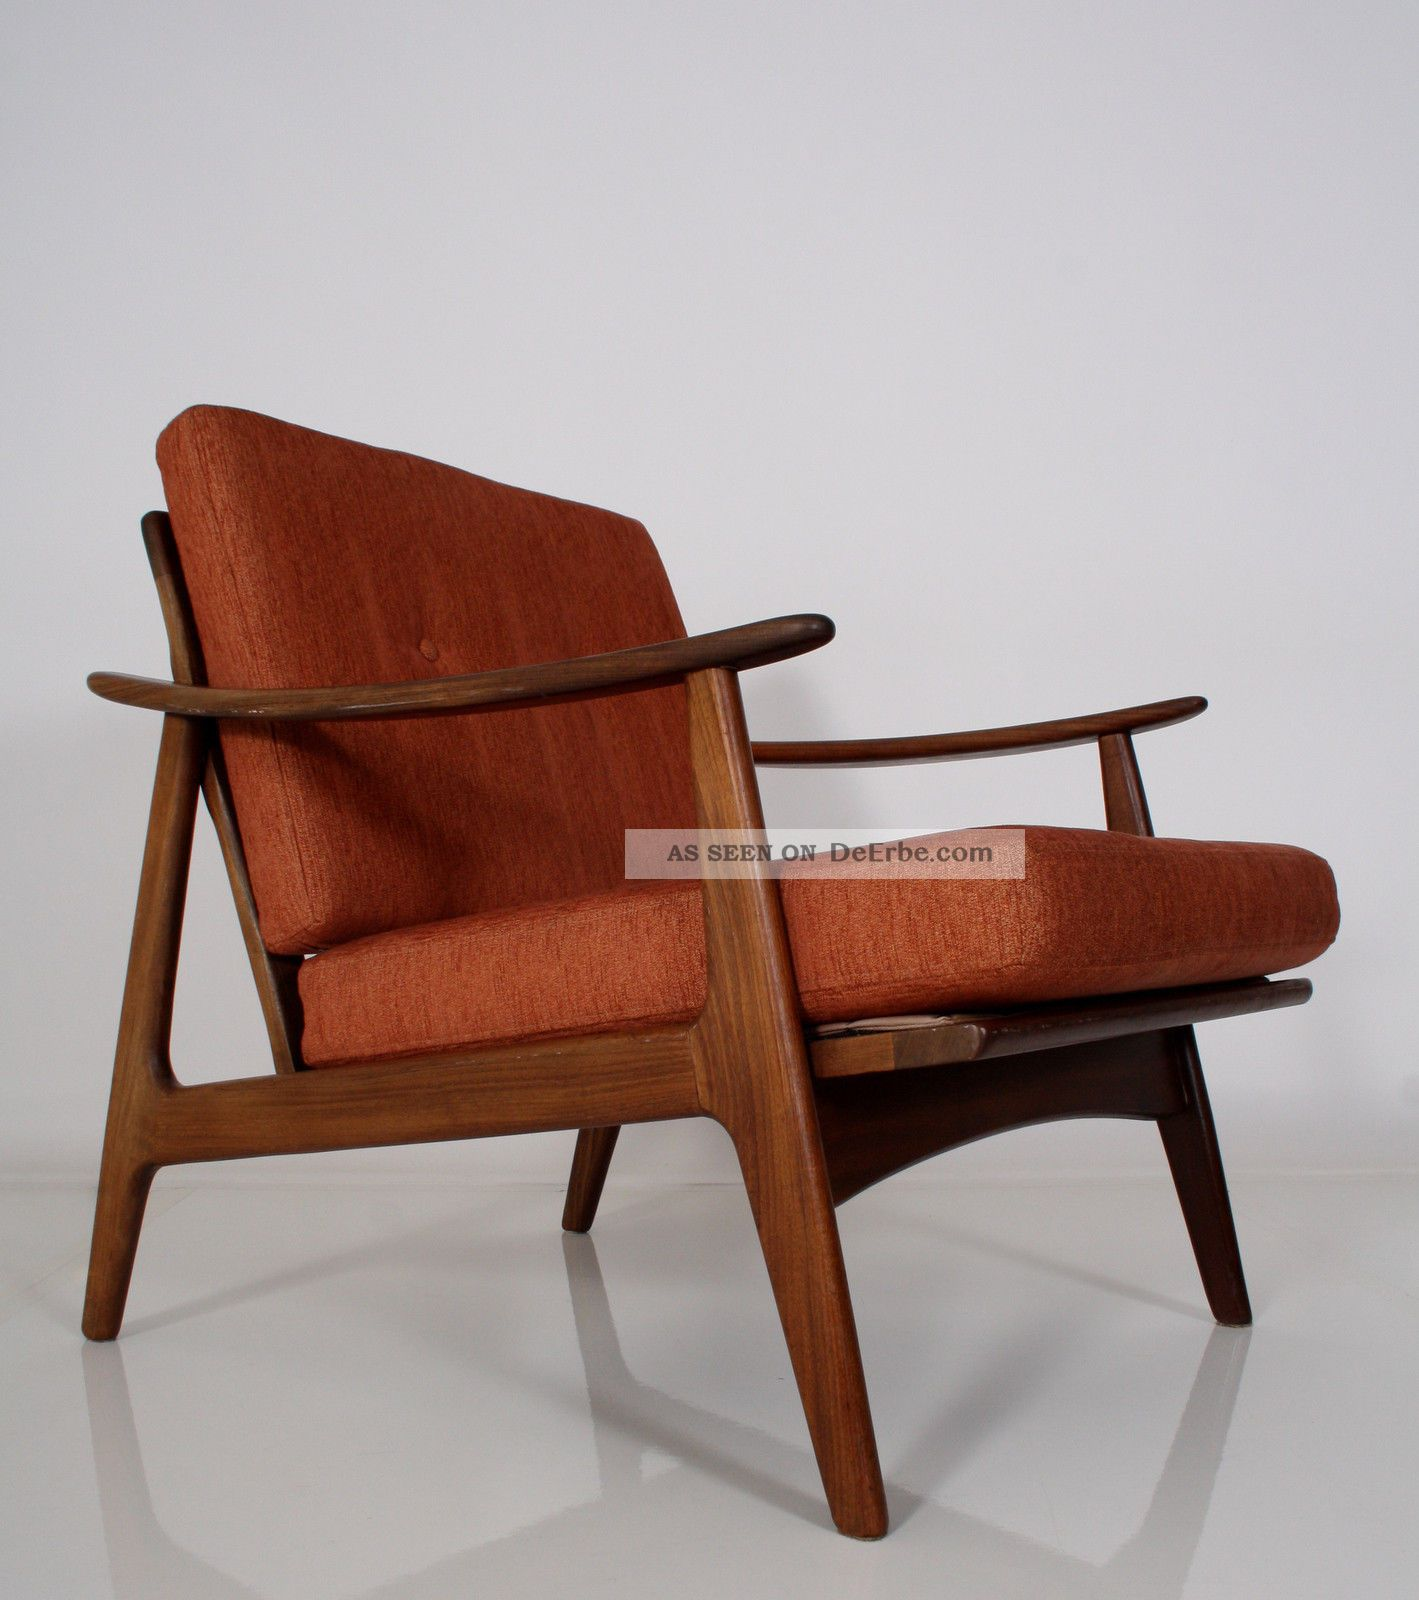 2 60er teak sessel danish design top 60s easy chairs fauteuil poltrona. Black Bedroom Furniture Sets. Home Design Ideas